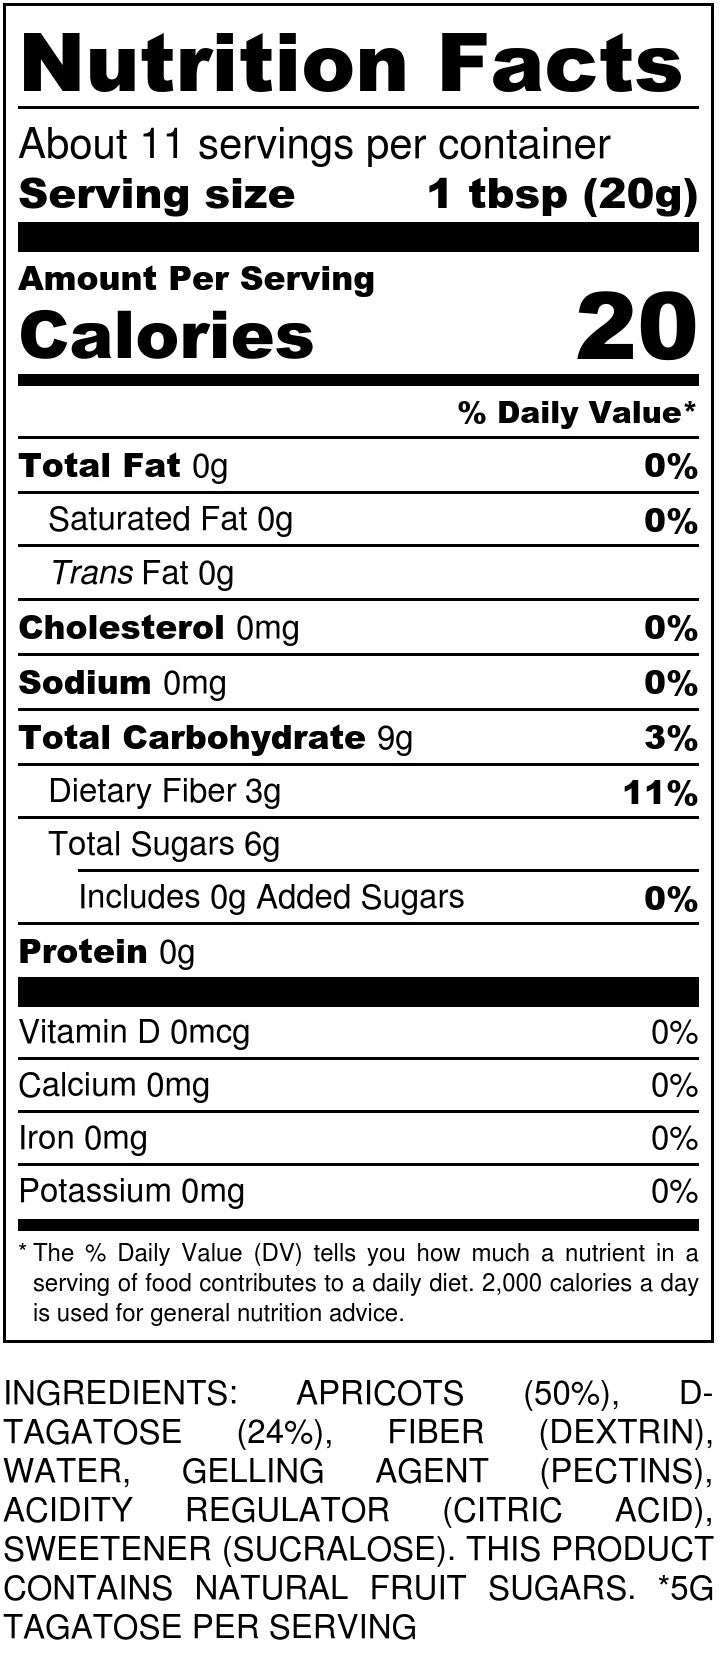 No Sugar Added Apricot Jam Nutrition Facts